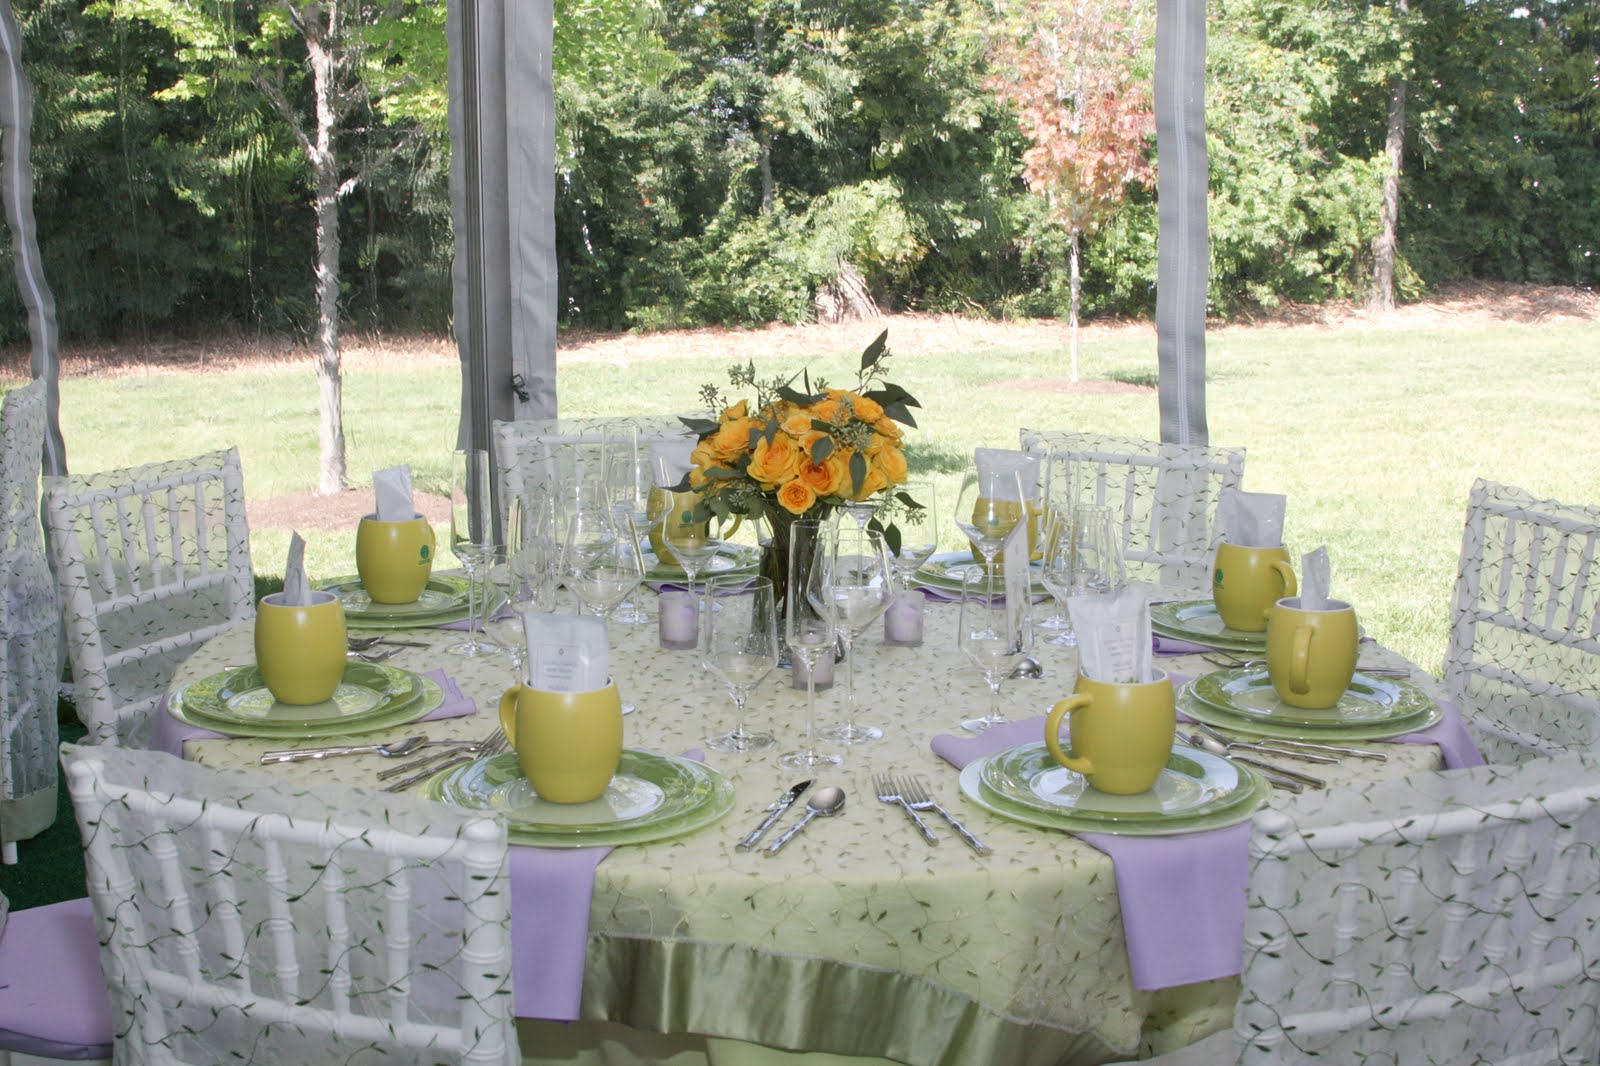 Wedding decorations, tables on personalized wedding napkins